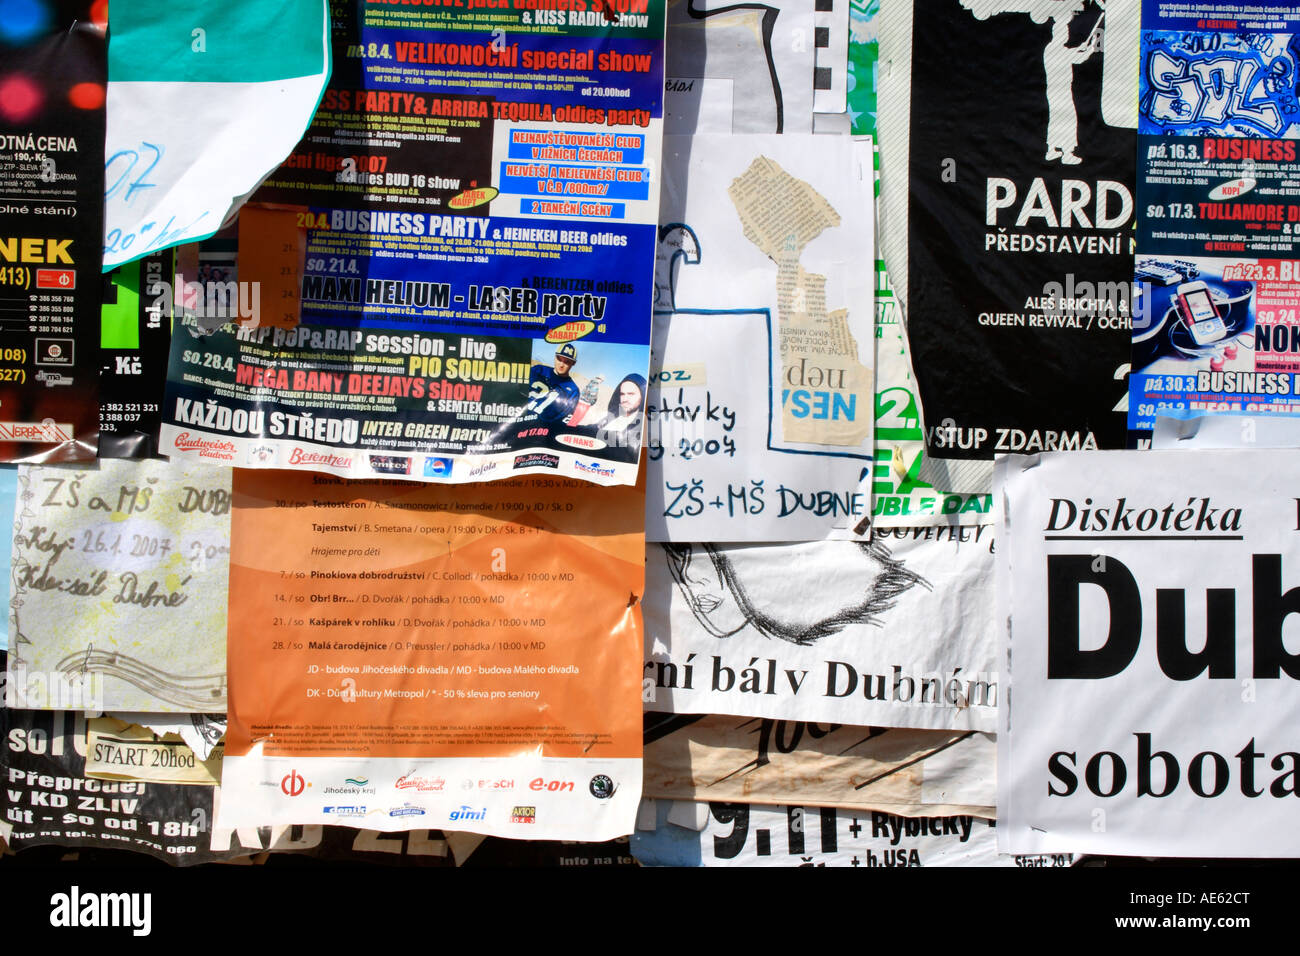 detail of a pin board with posters at the village Holasovice, Czech Republic.  Europe. Photo by Willy Matheisl - Stock Image